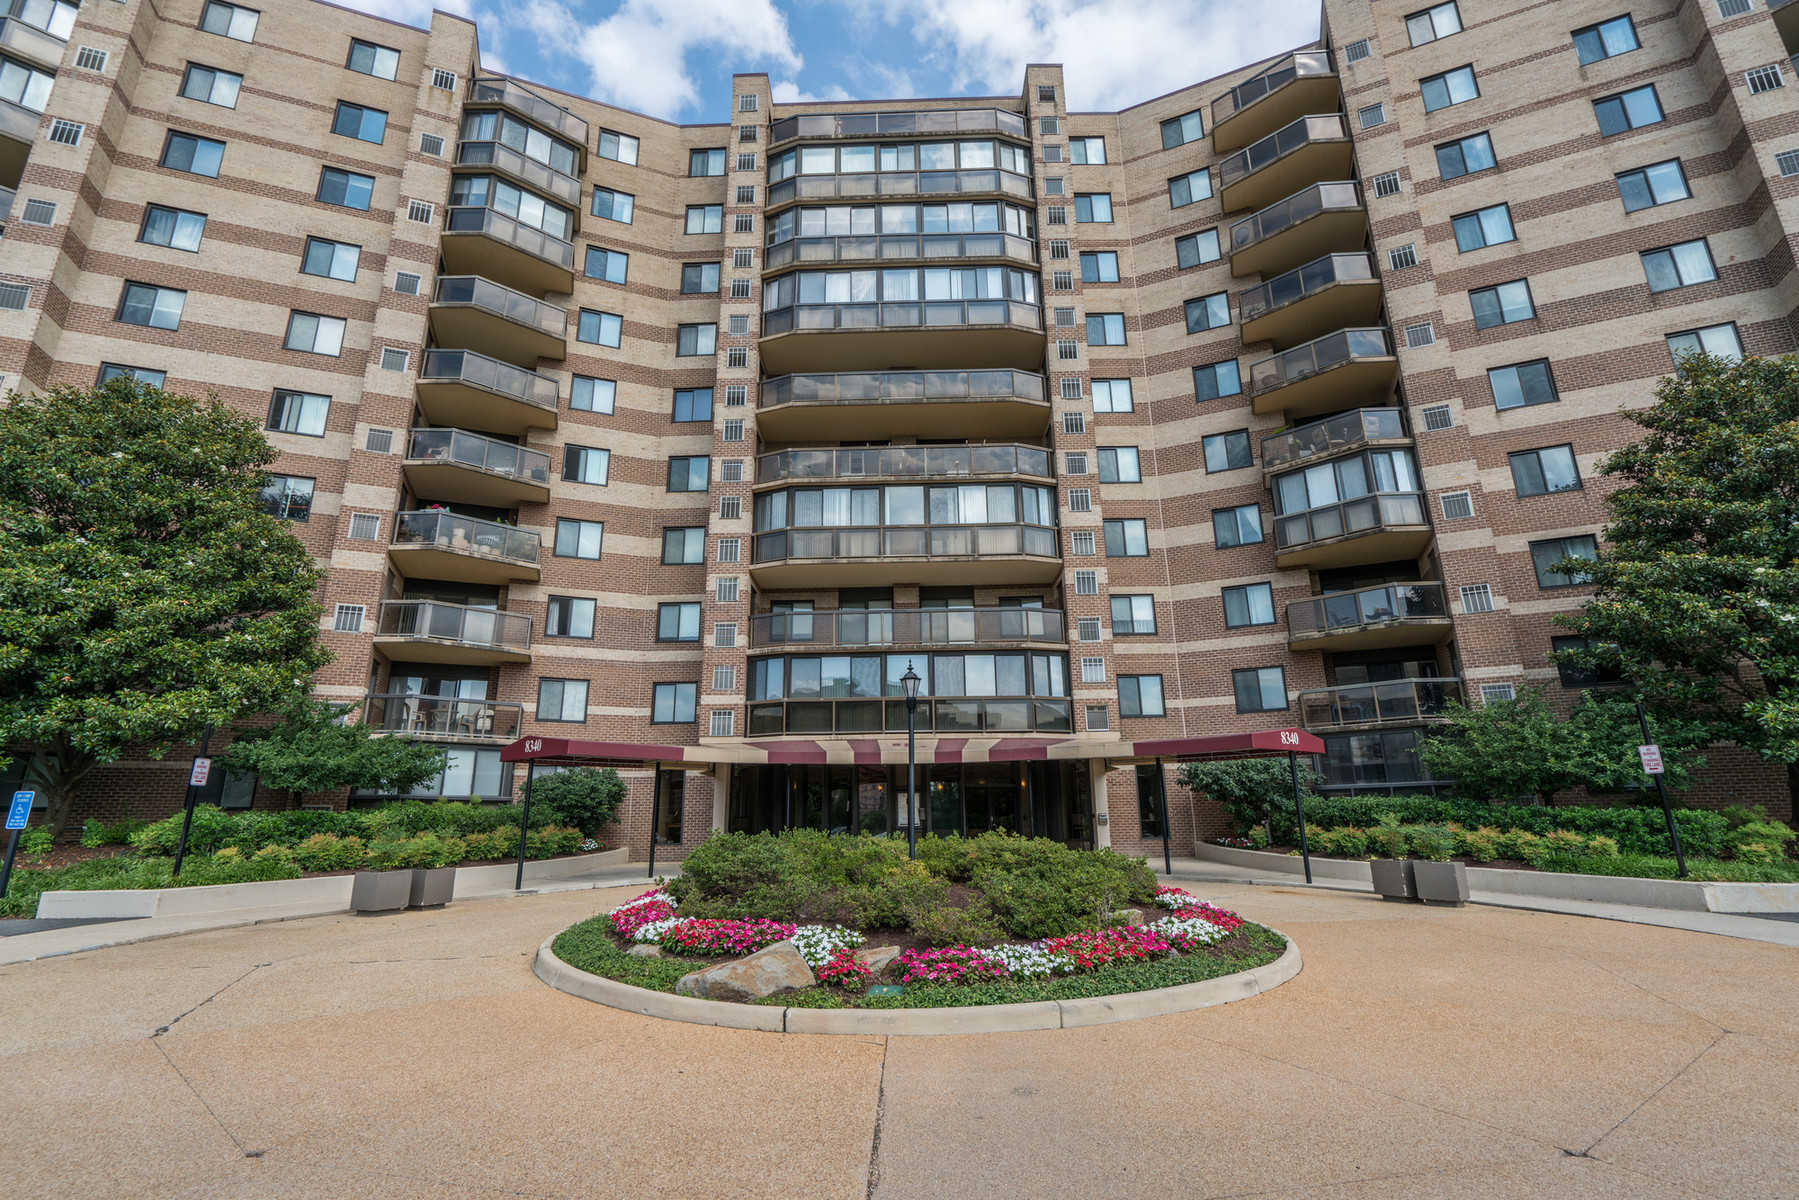 Additional photo for property listing at The Rotonda 8340 Greensboro Dr 1021 McLean, Virginia 22102 Verenigde Staten